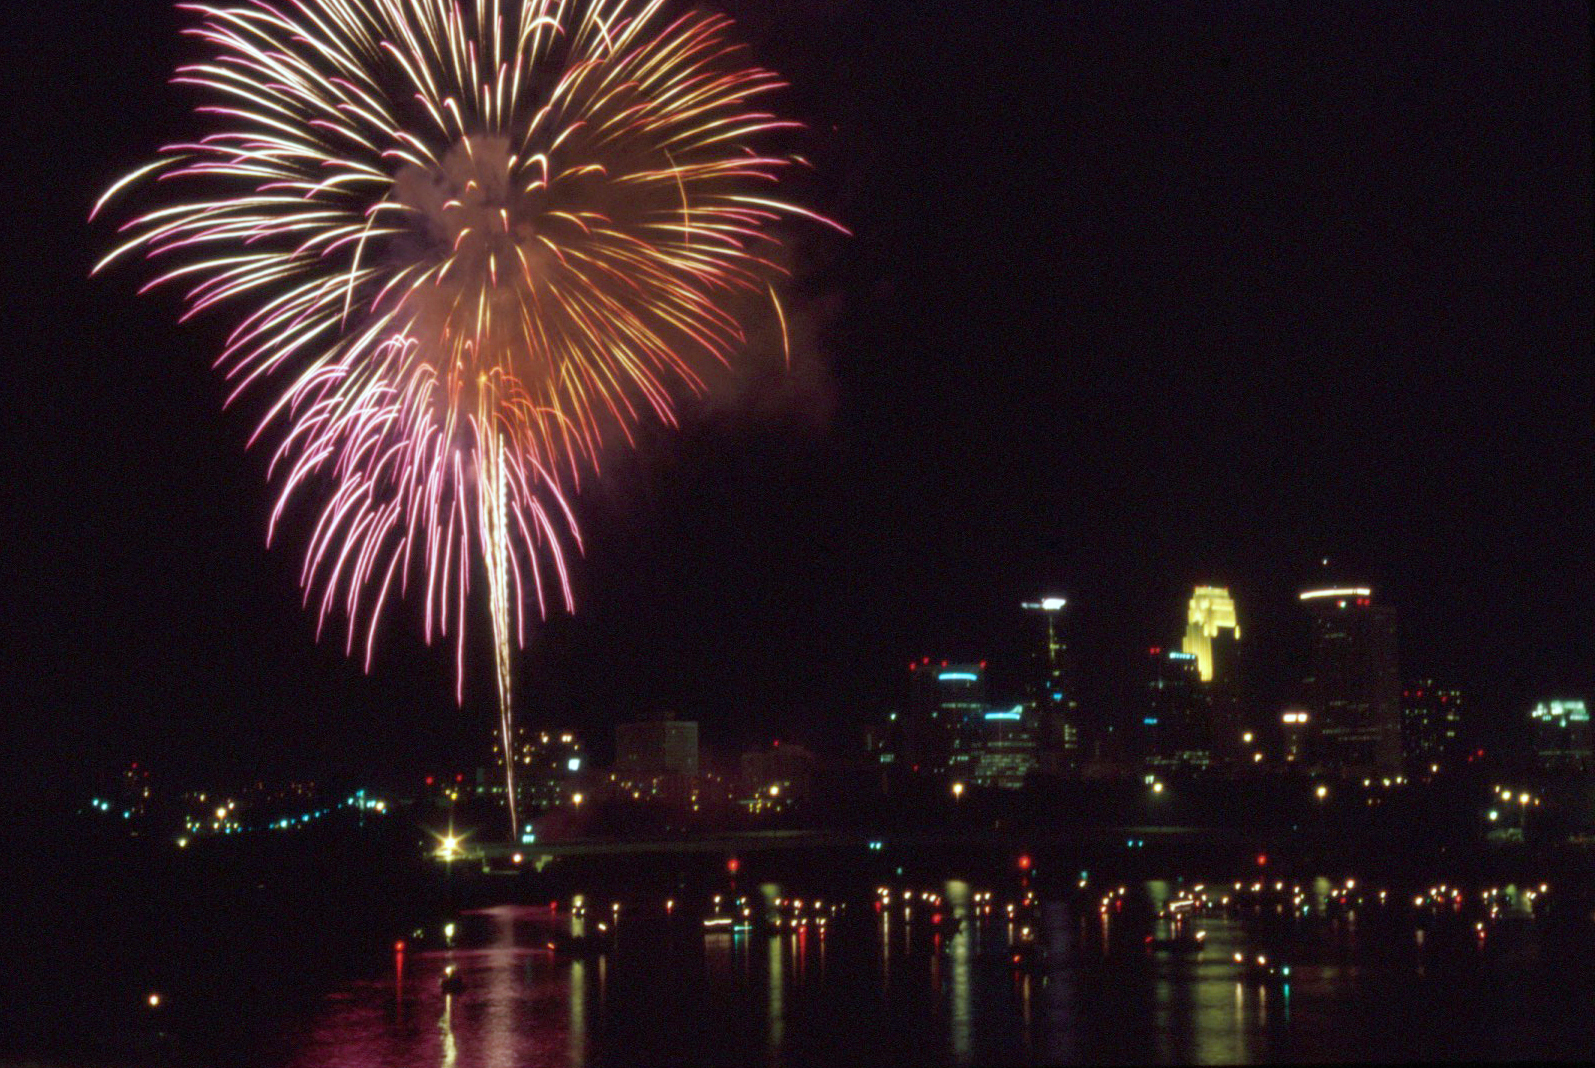 Image of fireworks over Minneapolis.